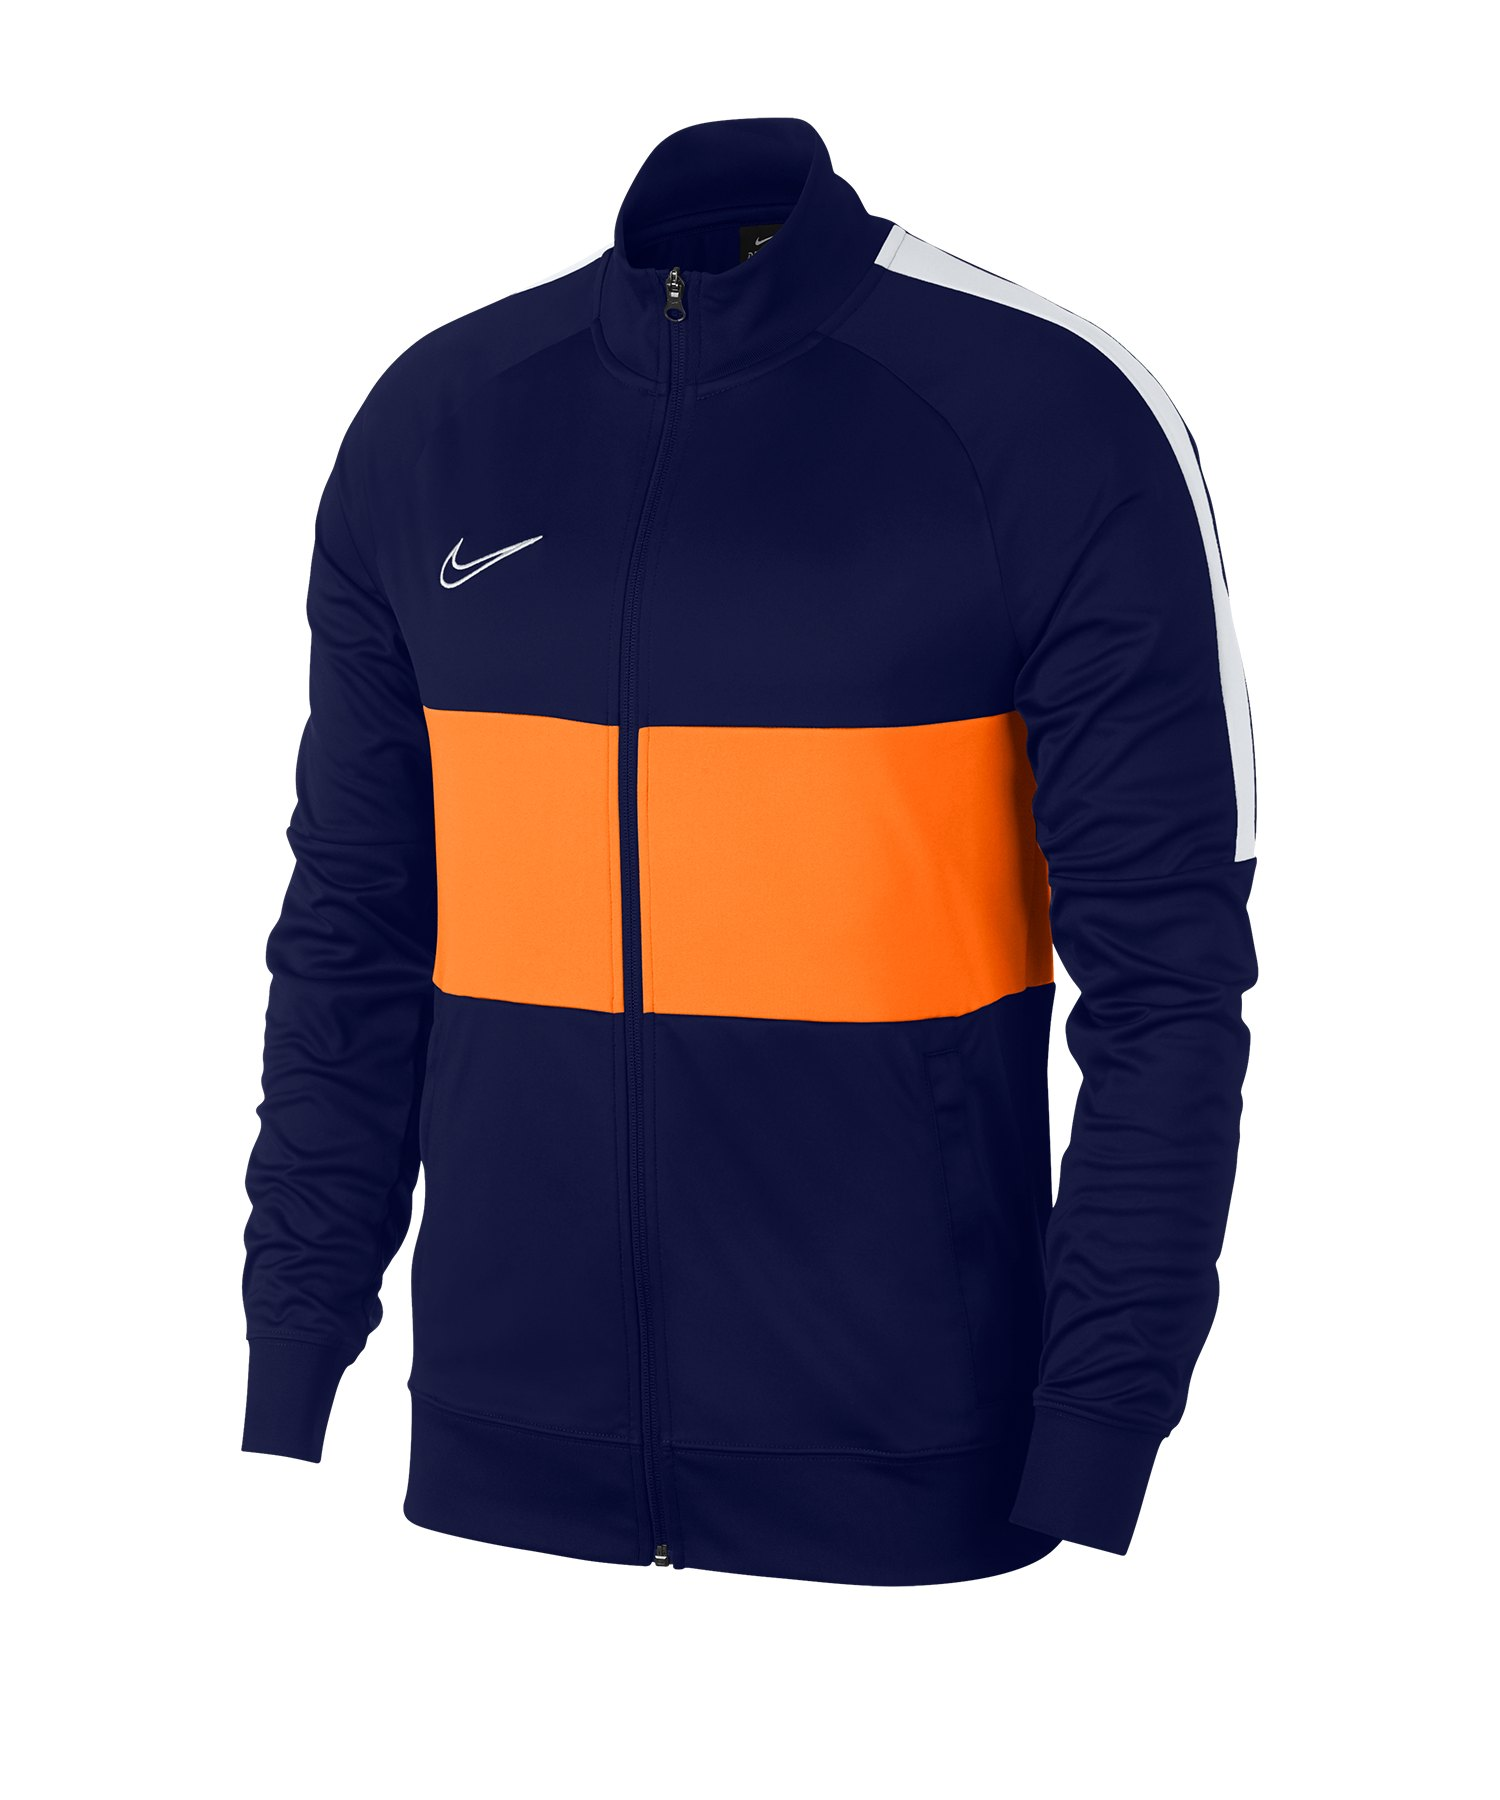 Nike Academy Dri-FIT Jacke Blau Orange F492 - Blau